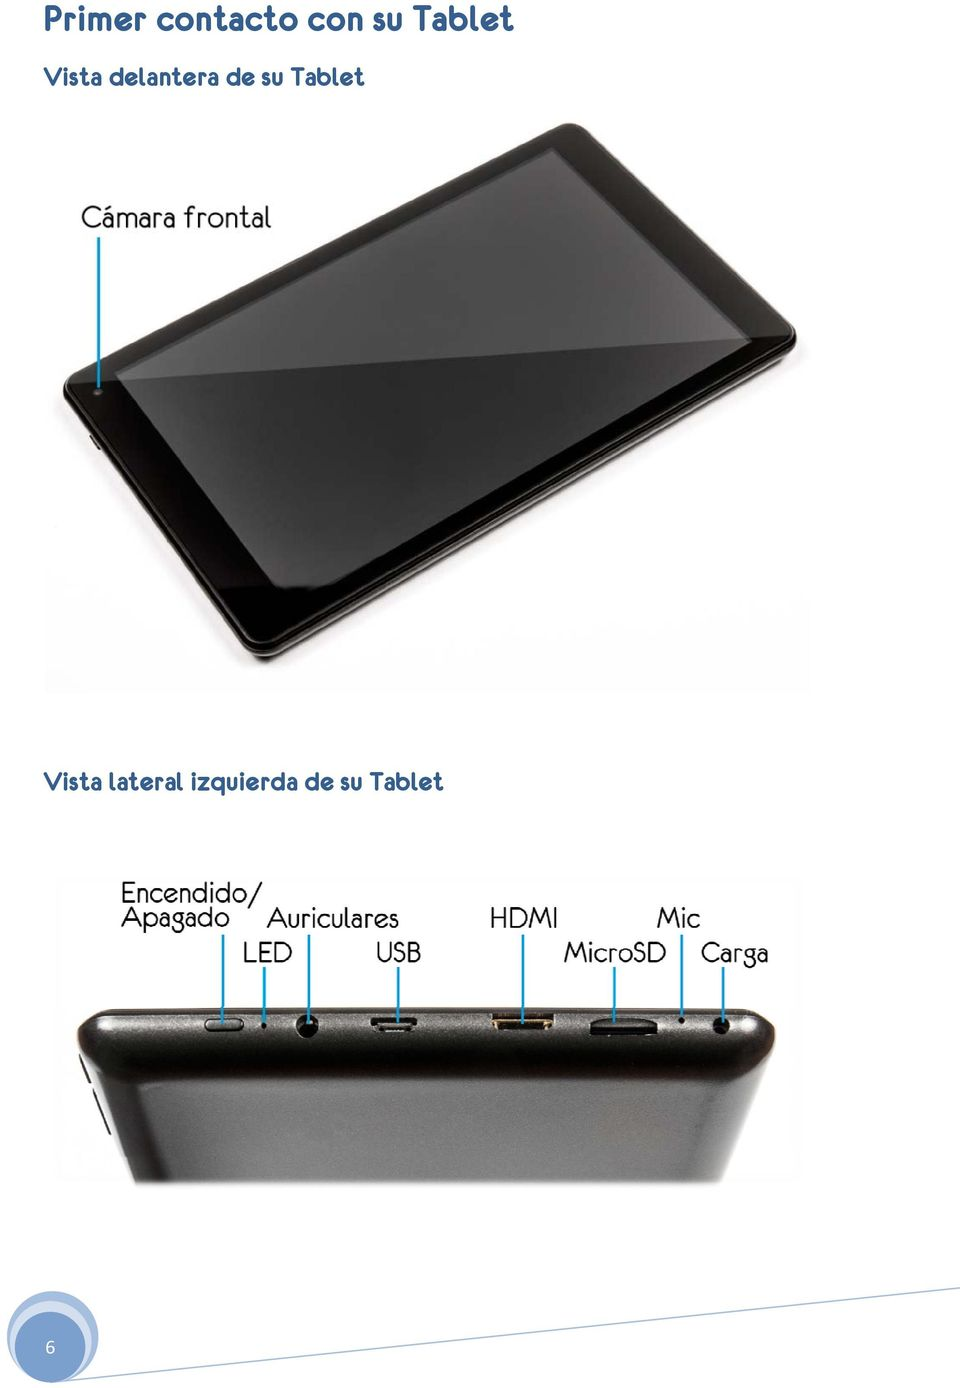 de su Tablet Vista